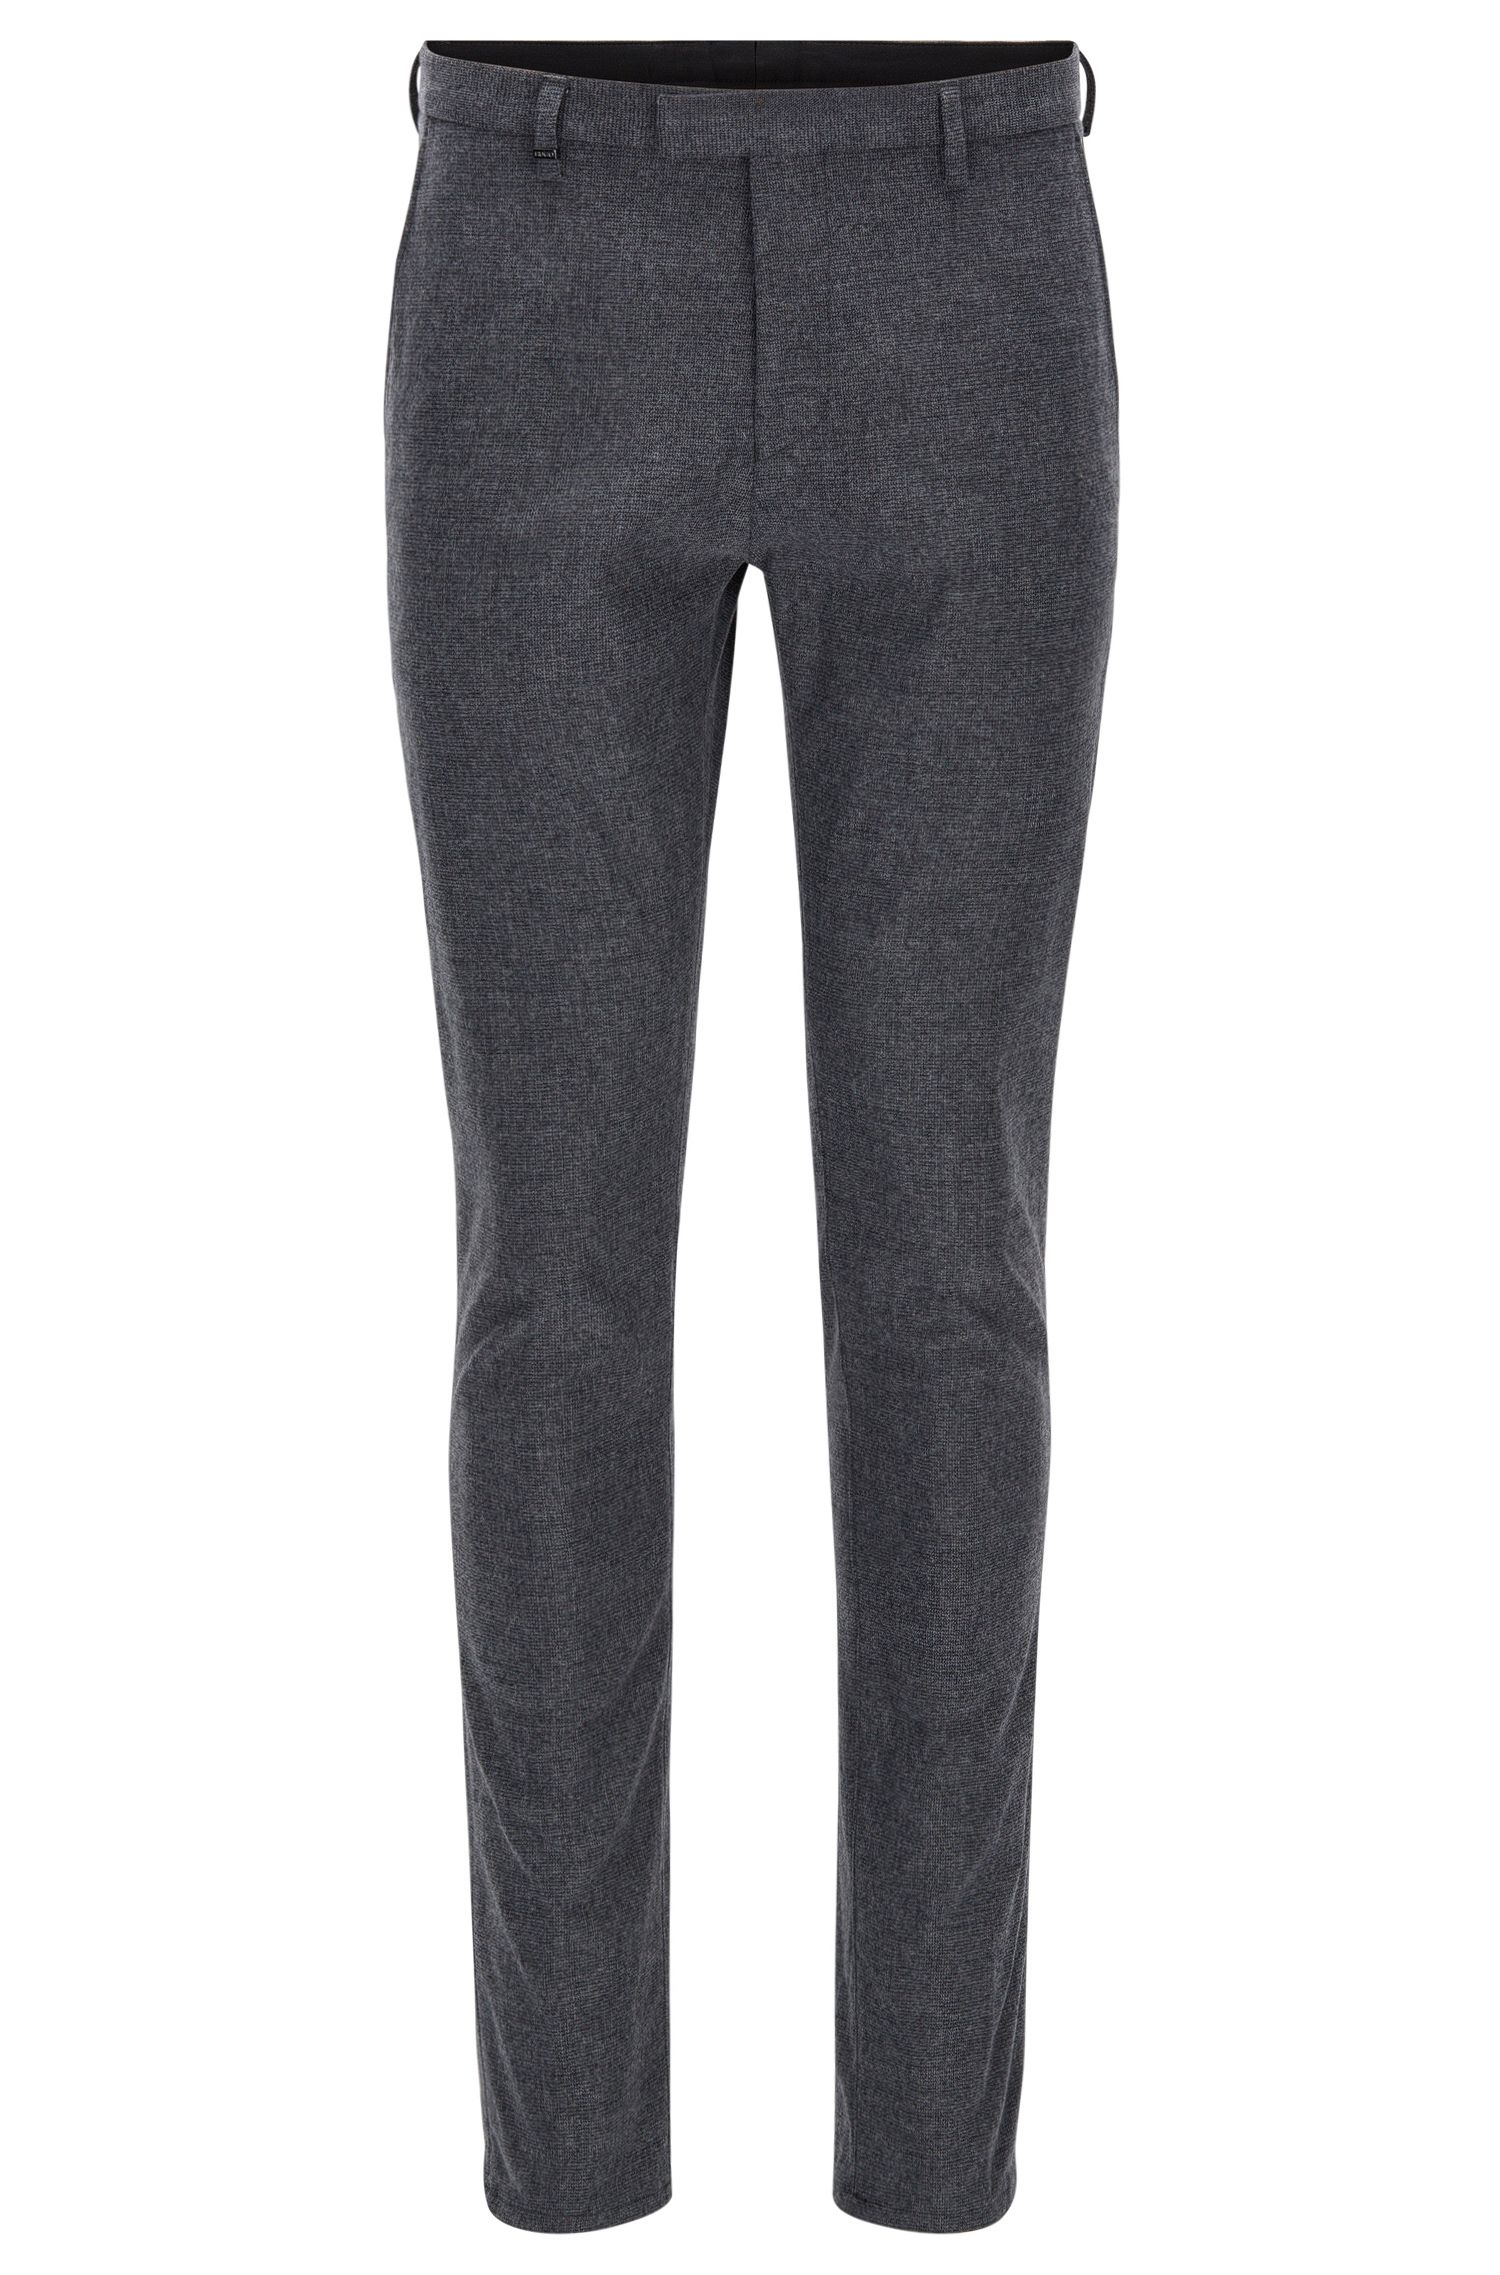 Tapered-fit trousers in a brushed cotton blend